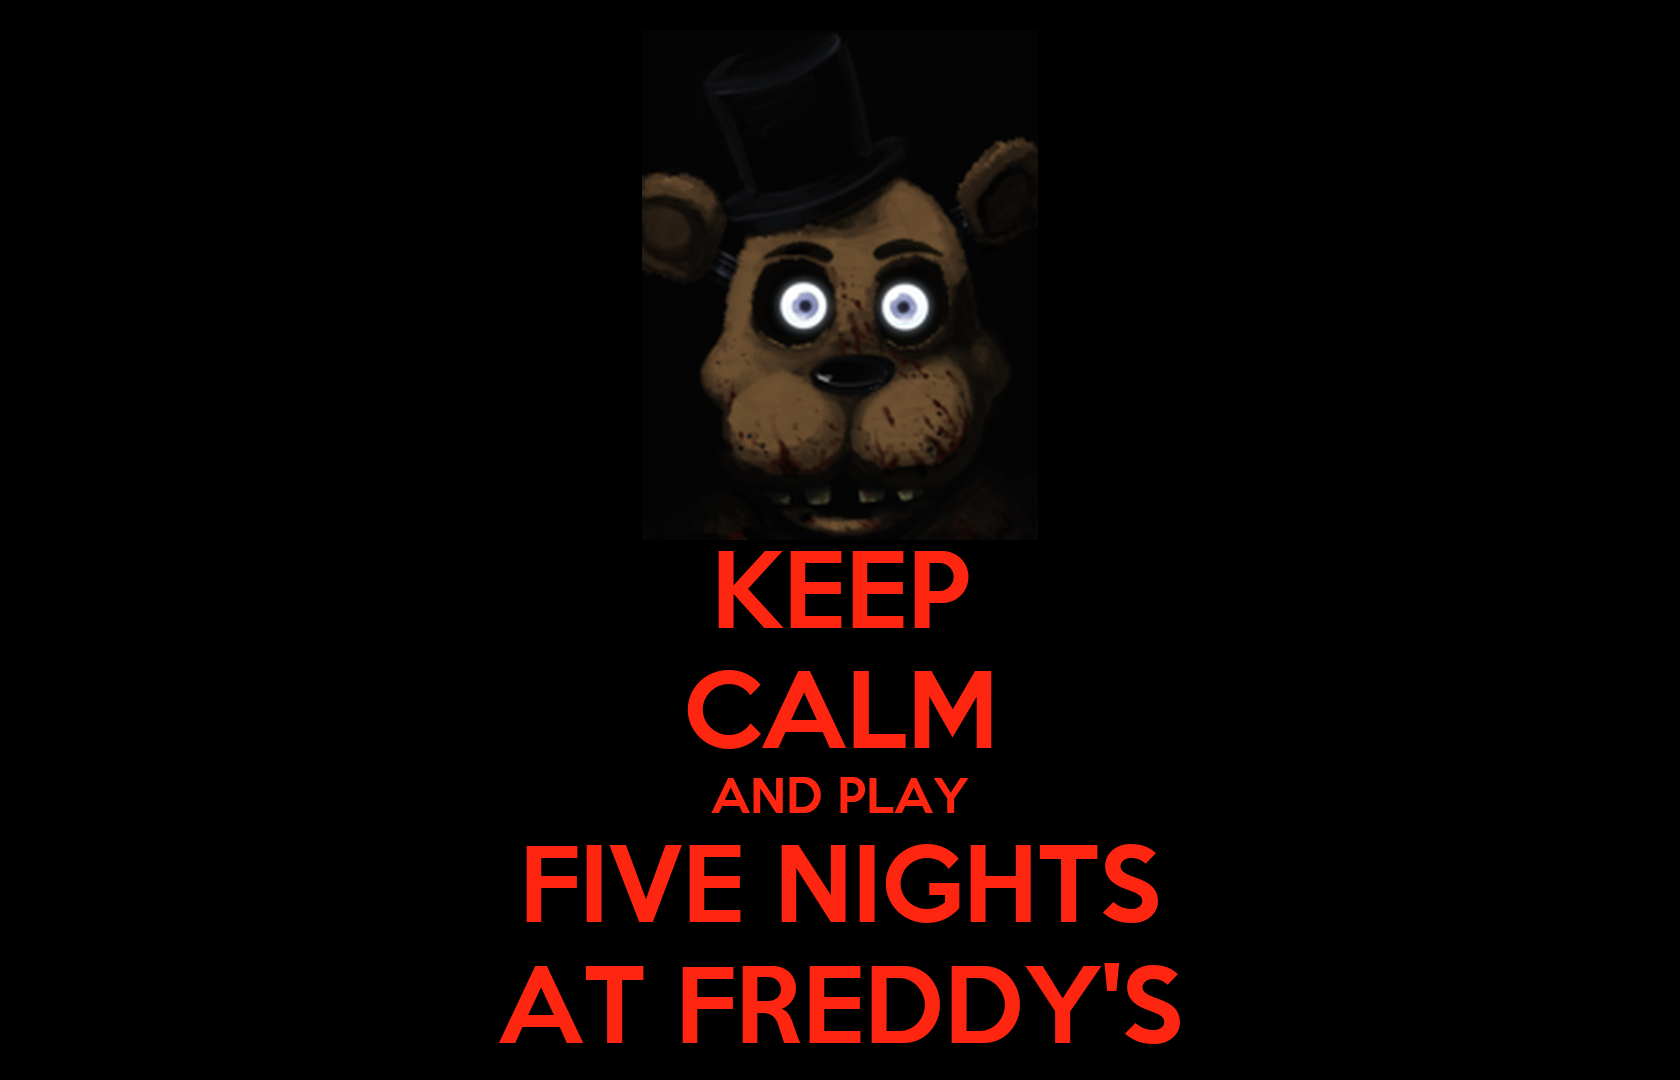 Five dates at freddys dating sim 7